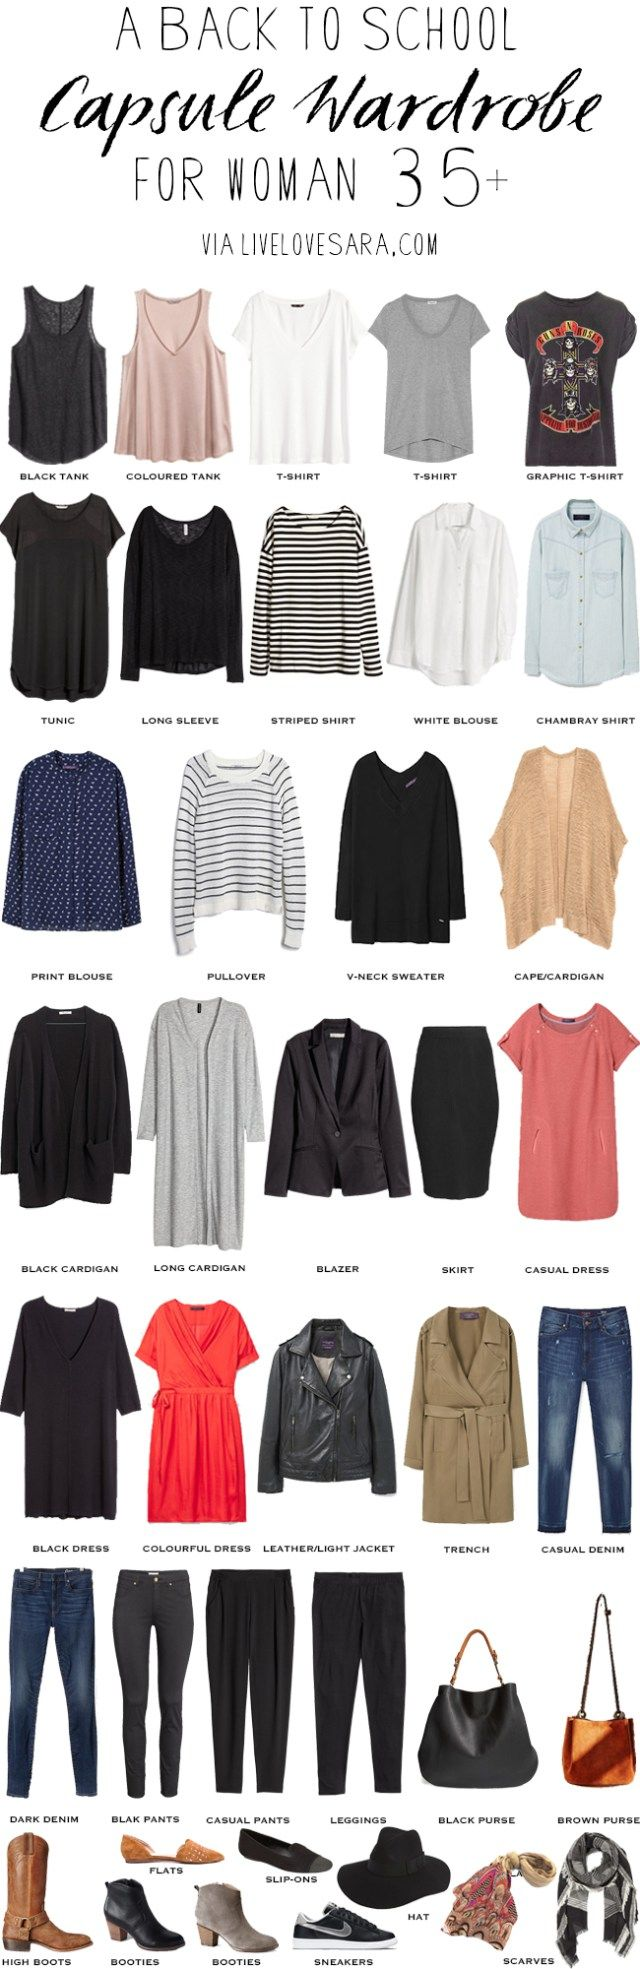 Many of these pieces already exist in my wardrobe, still need graphic tee, chambray tee and a dress or two (especially casual).